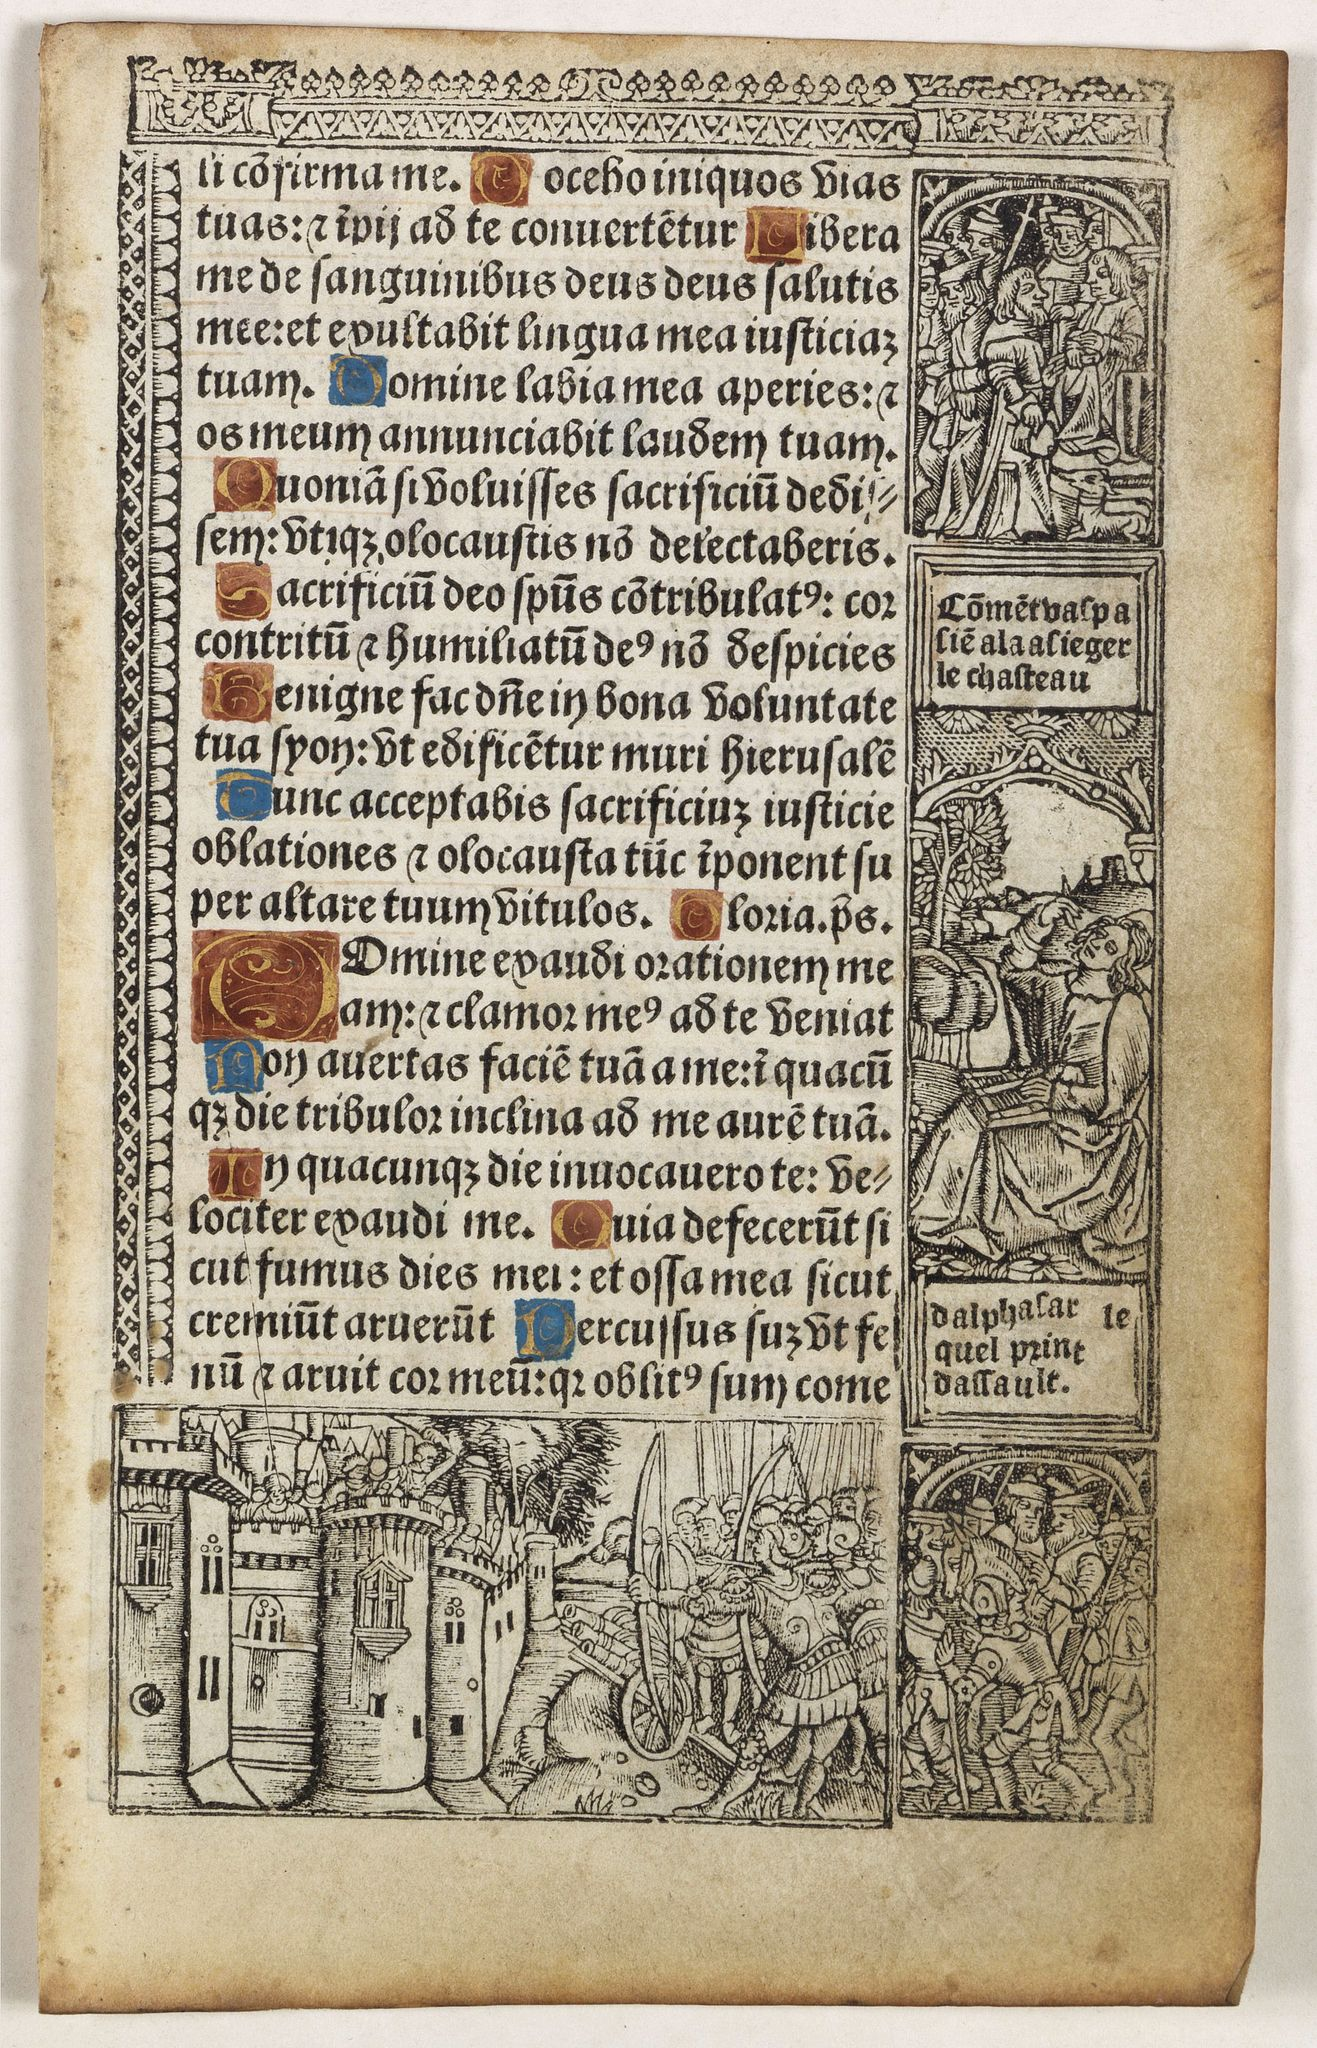 PRINTED BOOK OF HOURS (Use of Rome). -  Leaf on vellum from a printed Book of Hours In Latin and French.